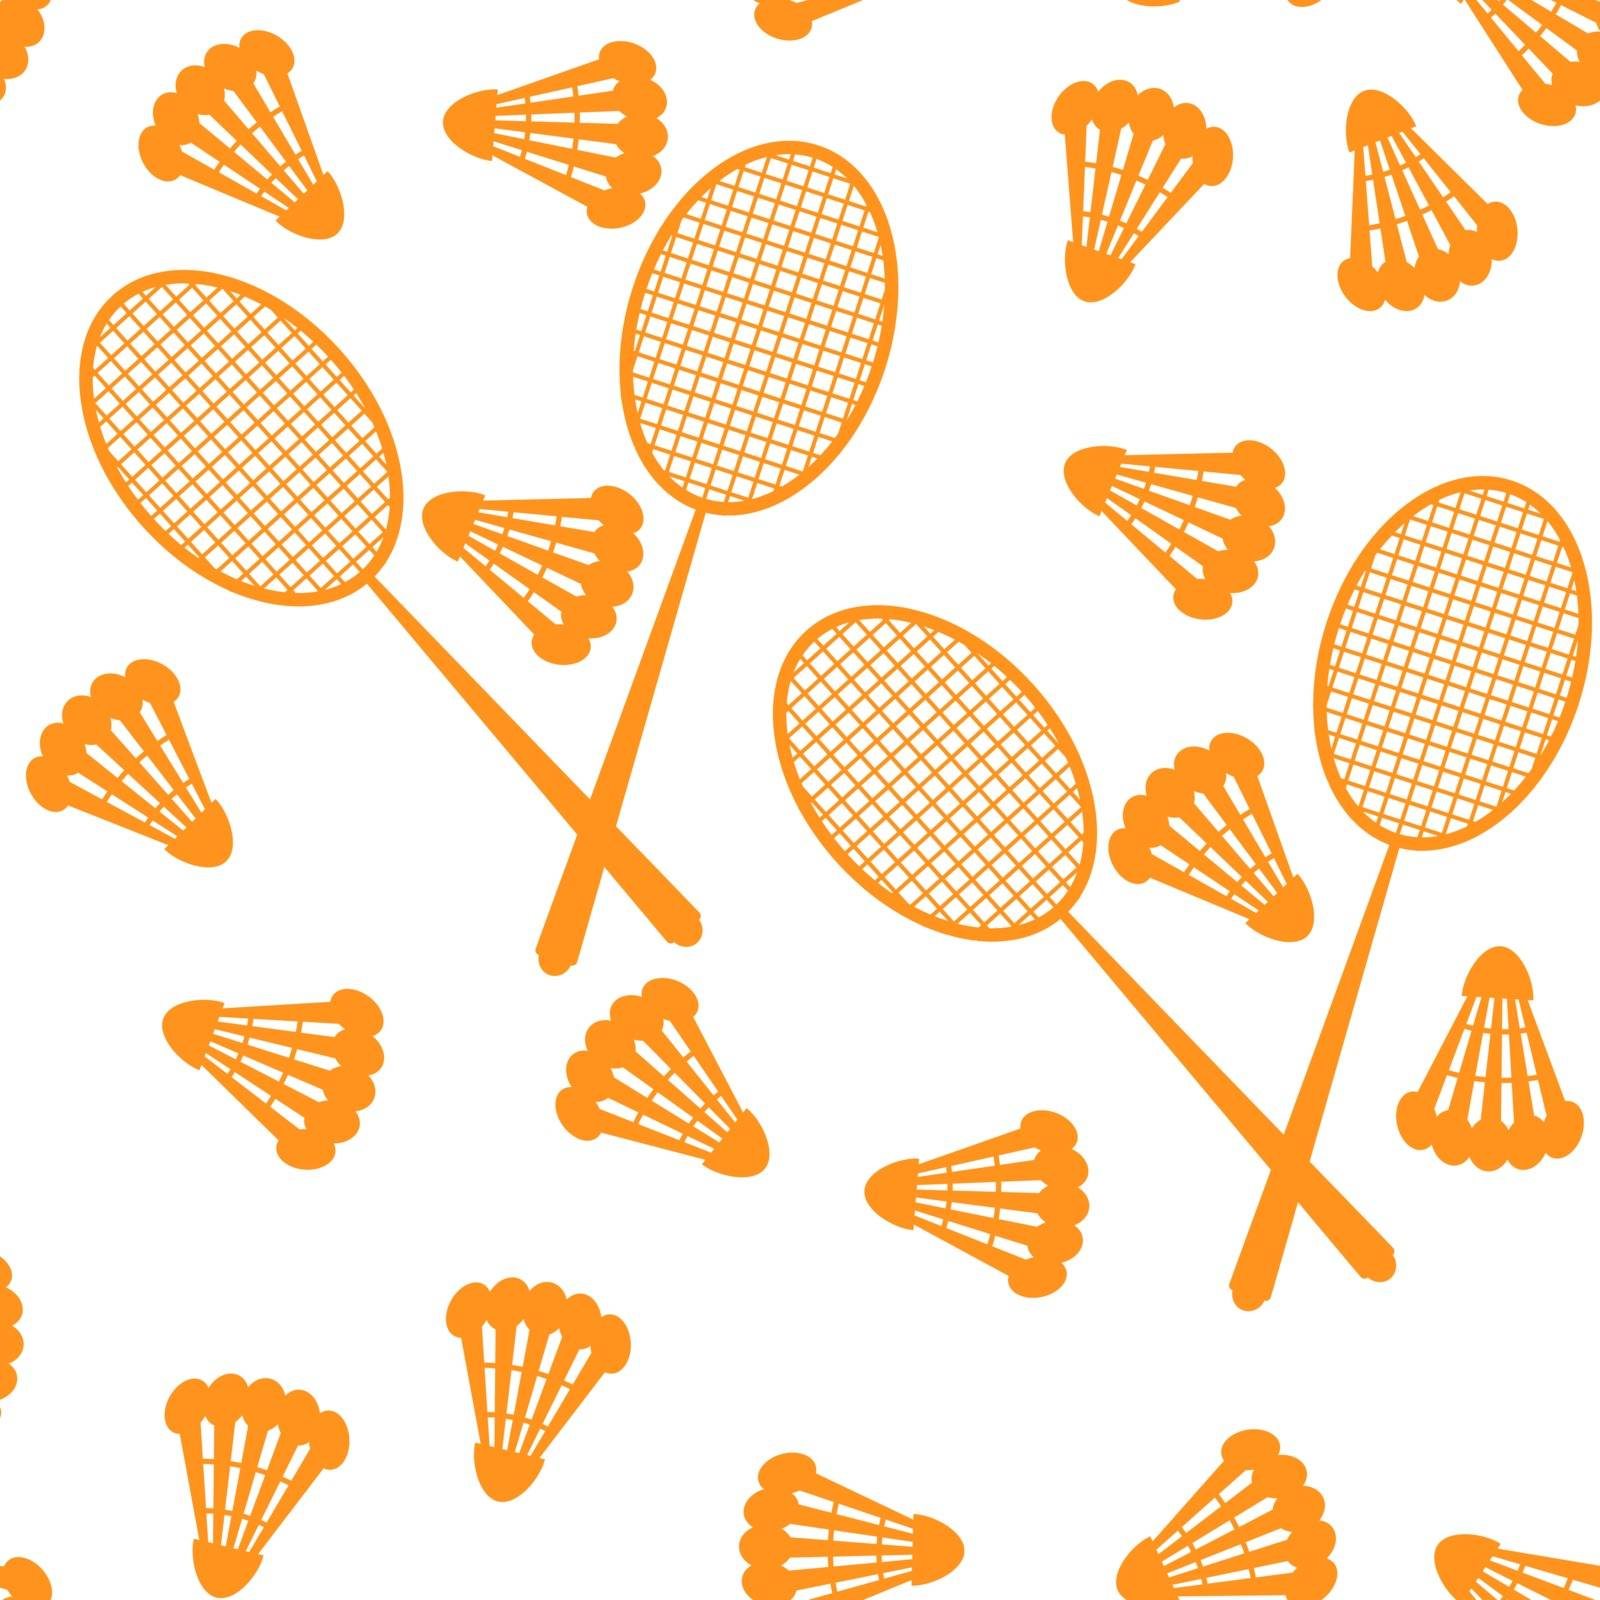 Badminton - shuttlecock and racket. Summer sport and relaxation. Vector illustration. Seamless pattern by victosha